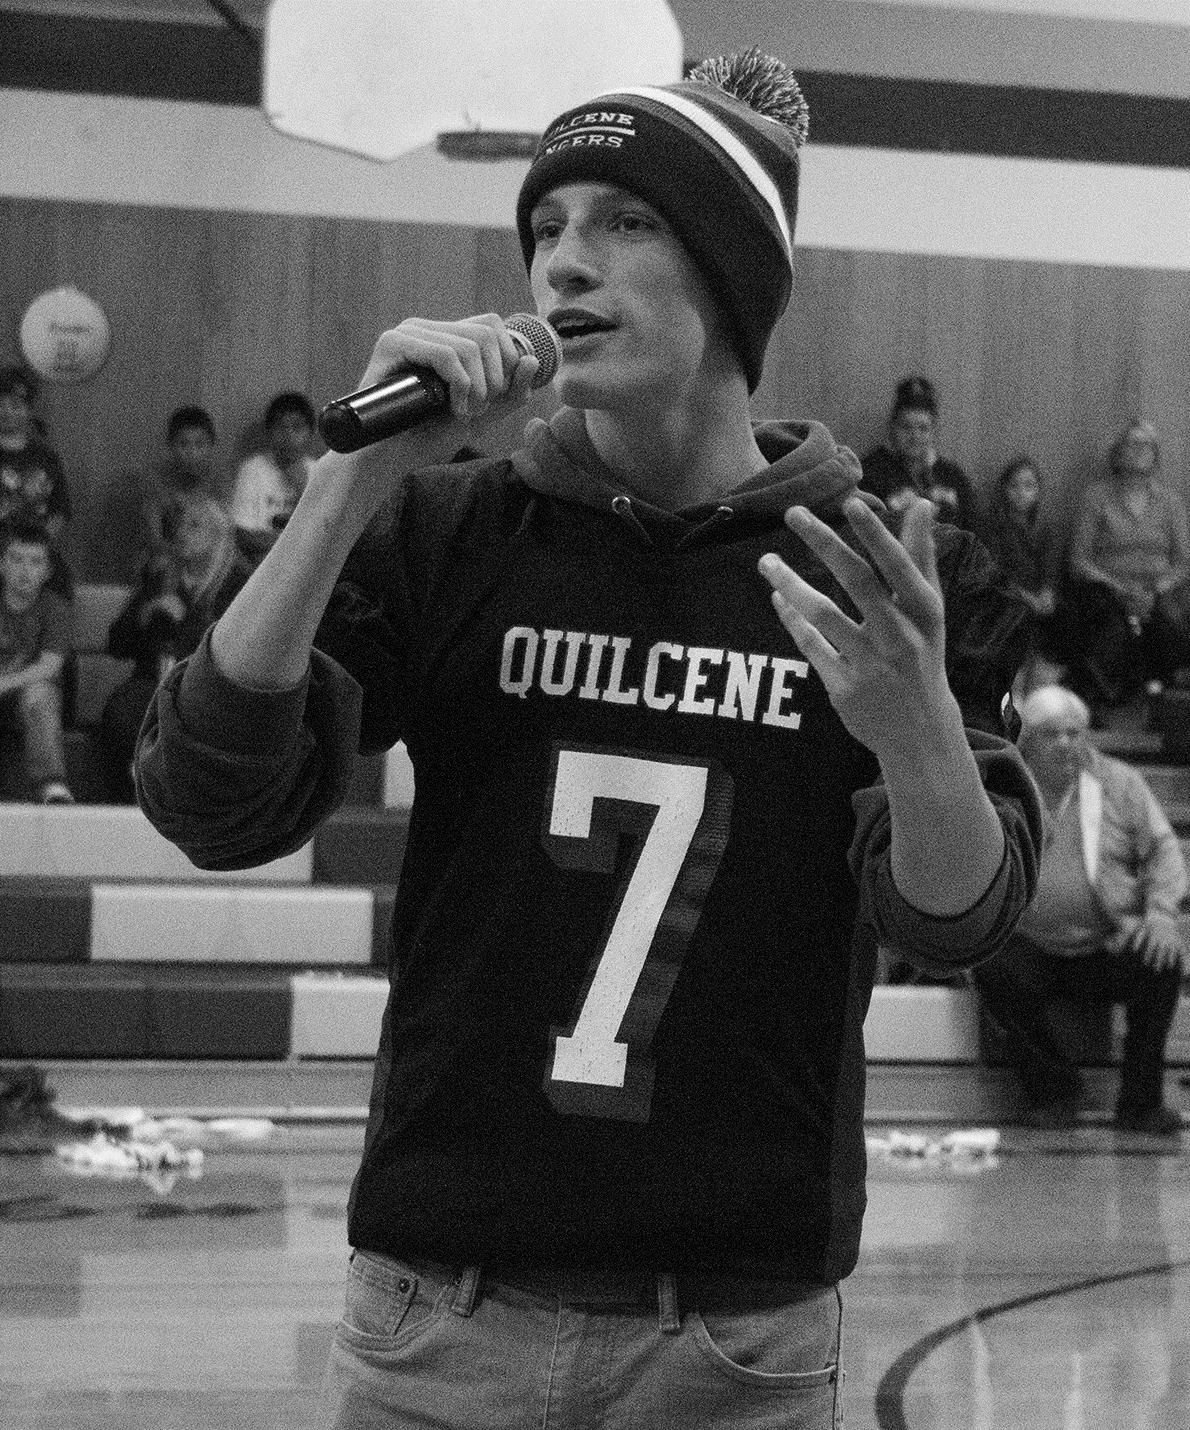 Junior quarterback Holdem Elkins addresses his fellow students to remind them of the football team's undefeated season.